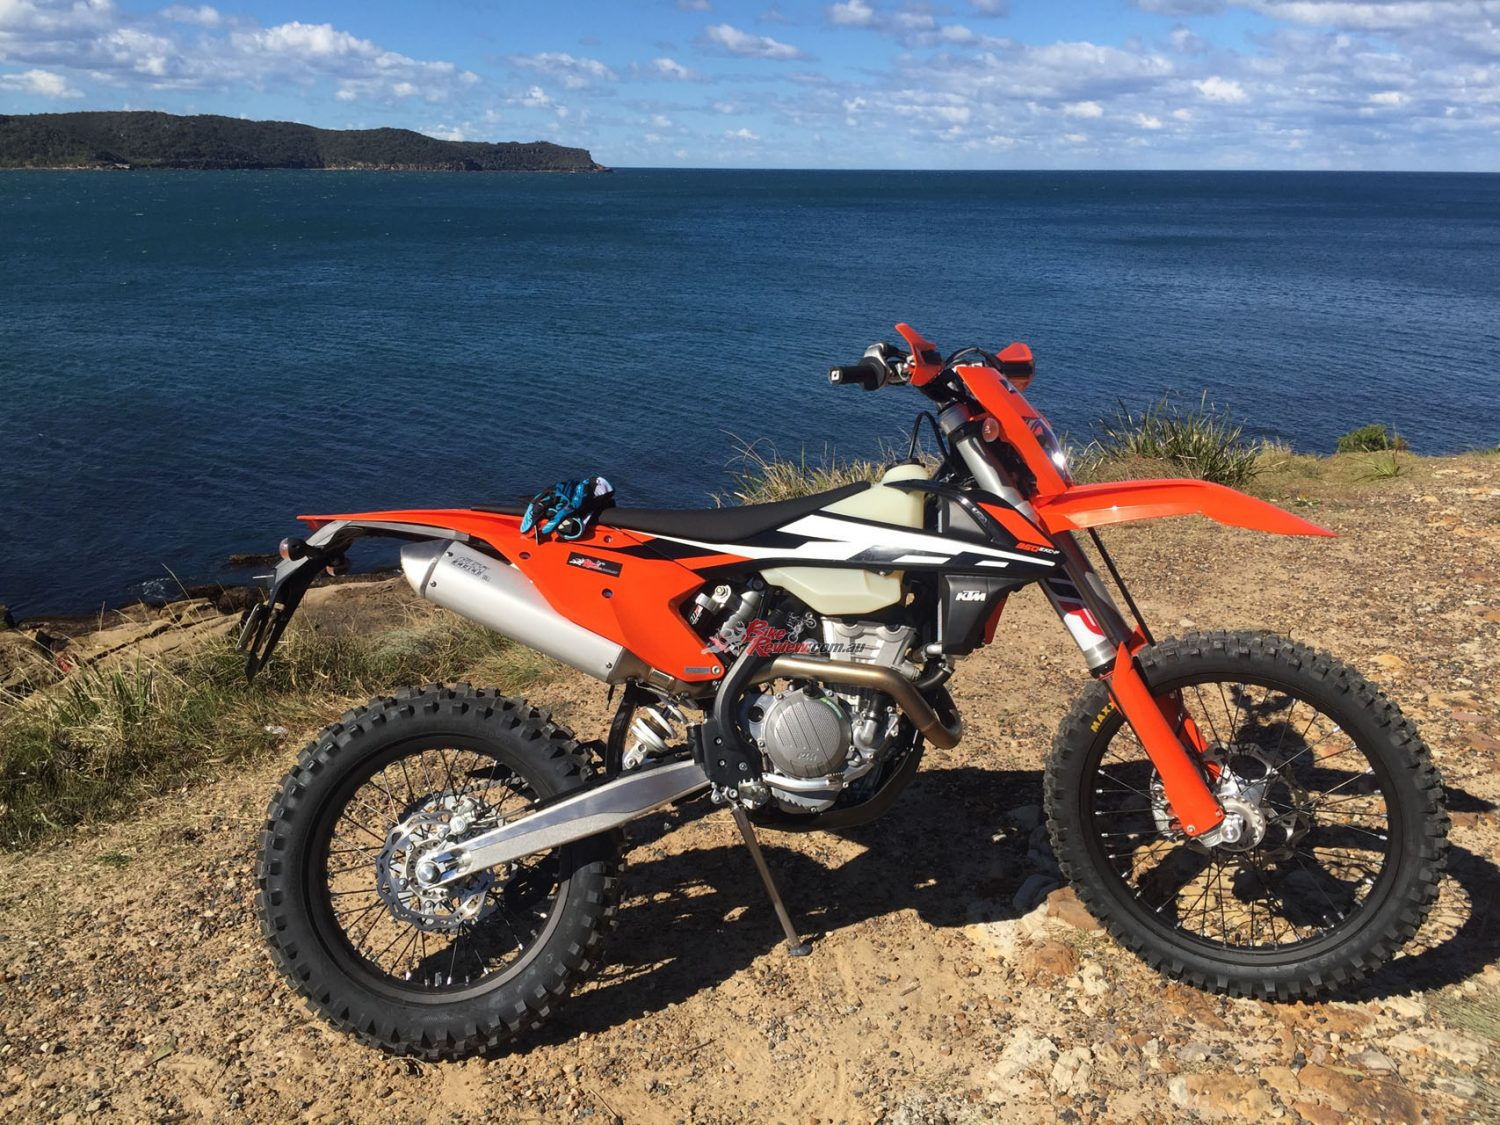 The Bike Review long term KTM 350 EXCF